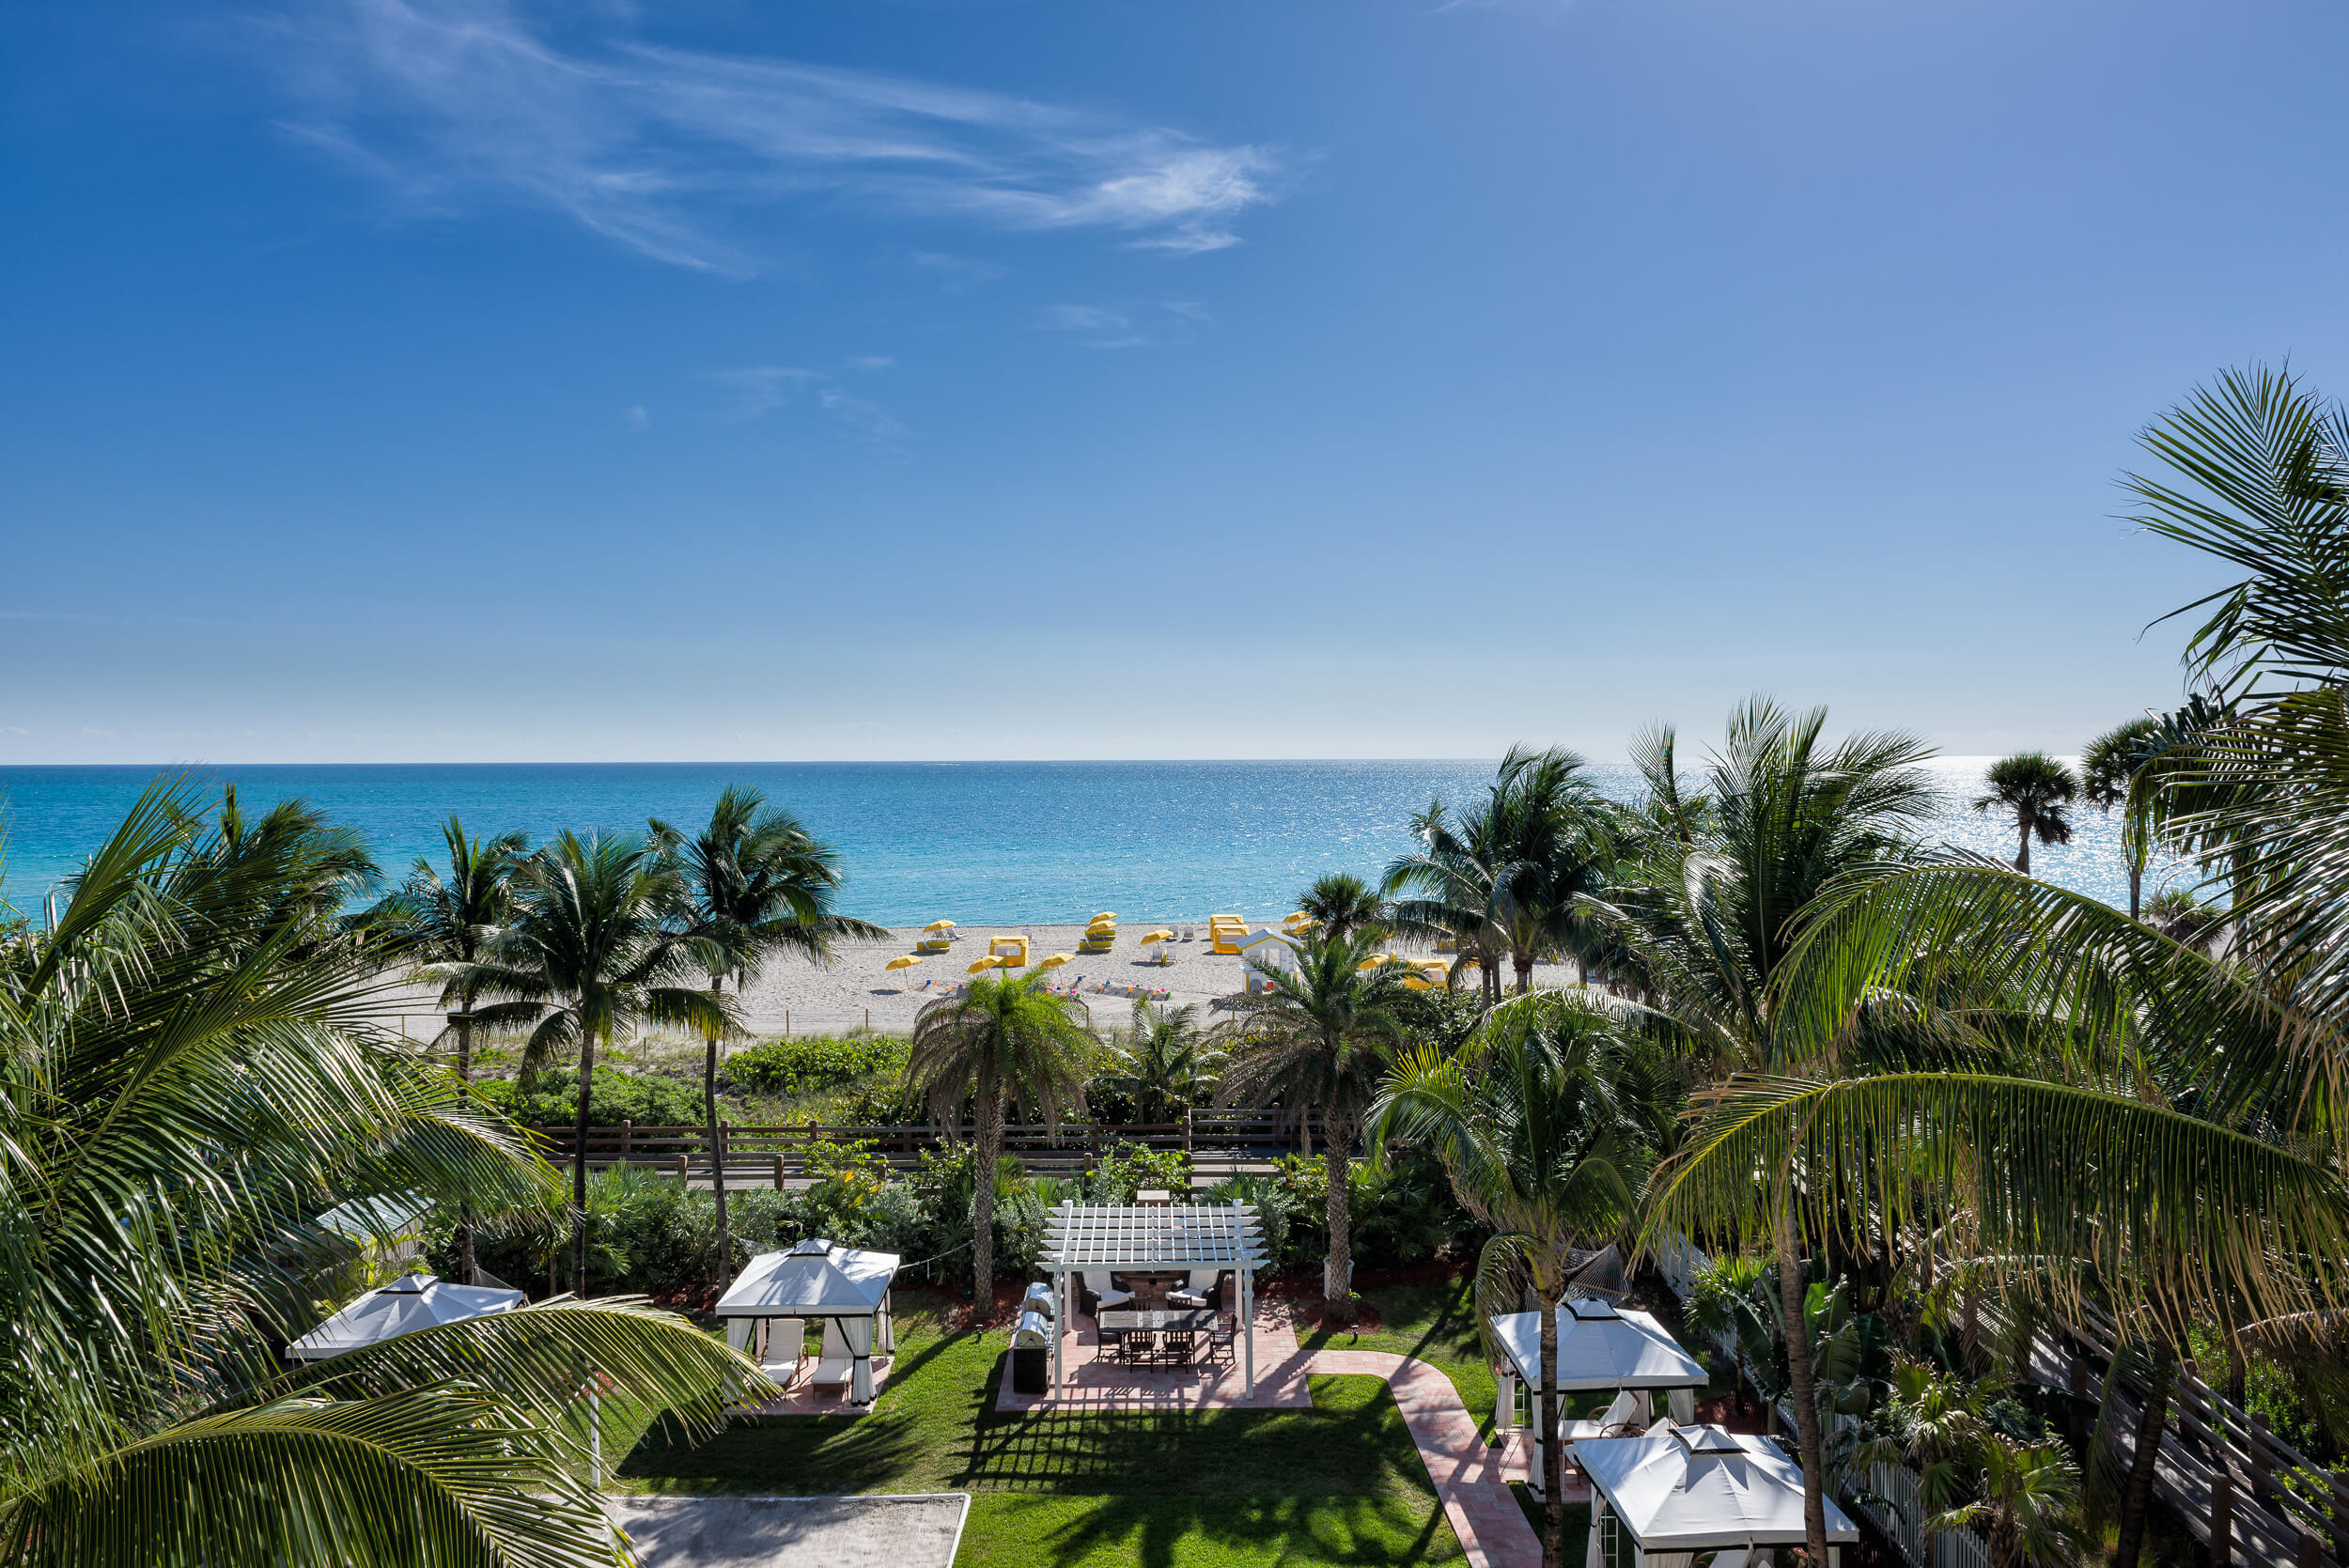 South Florida Resort Hotel | Westgate South Beach Oceanfront Resort